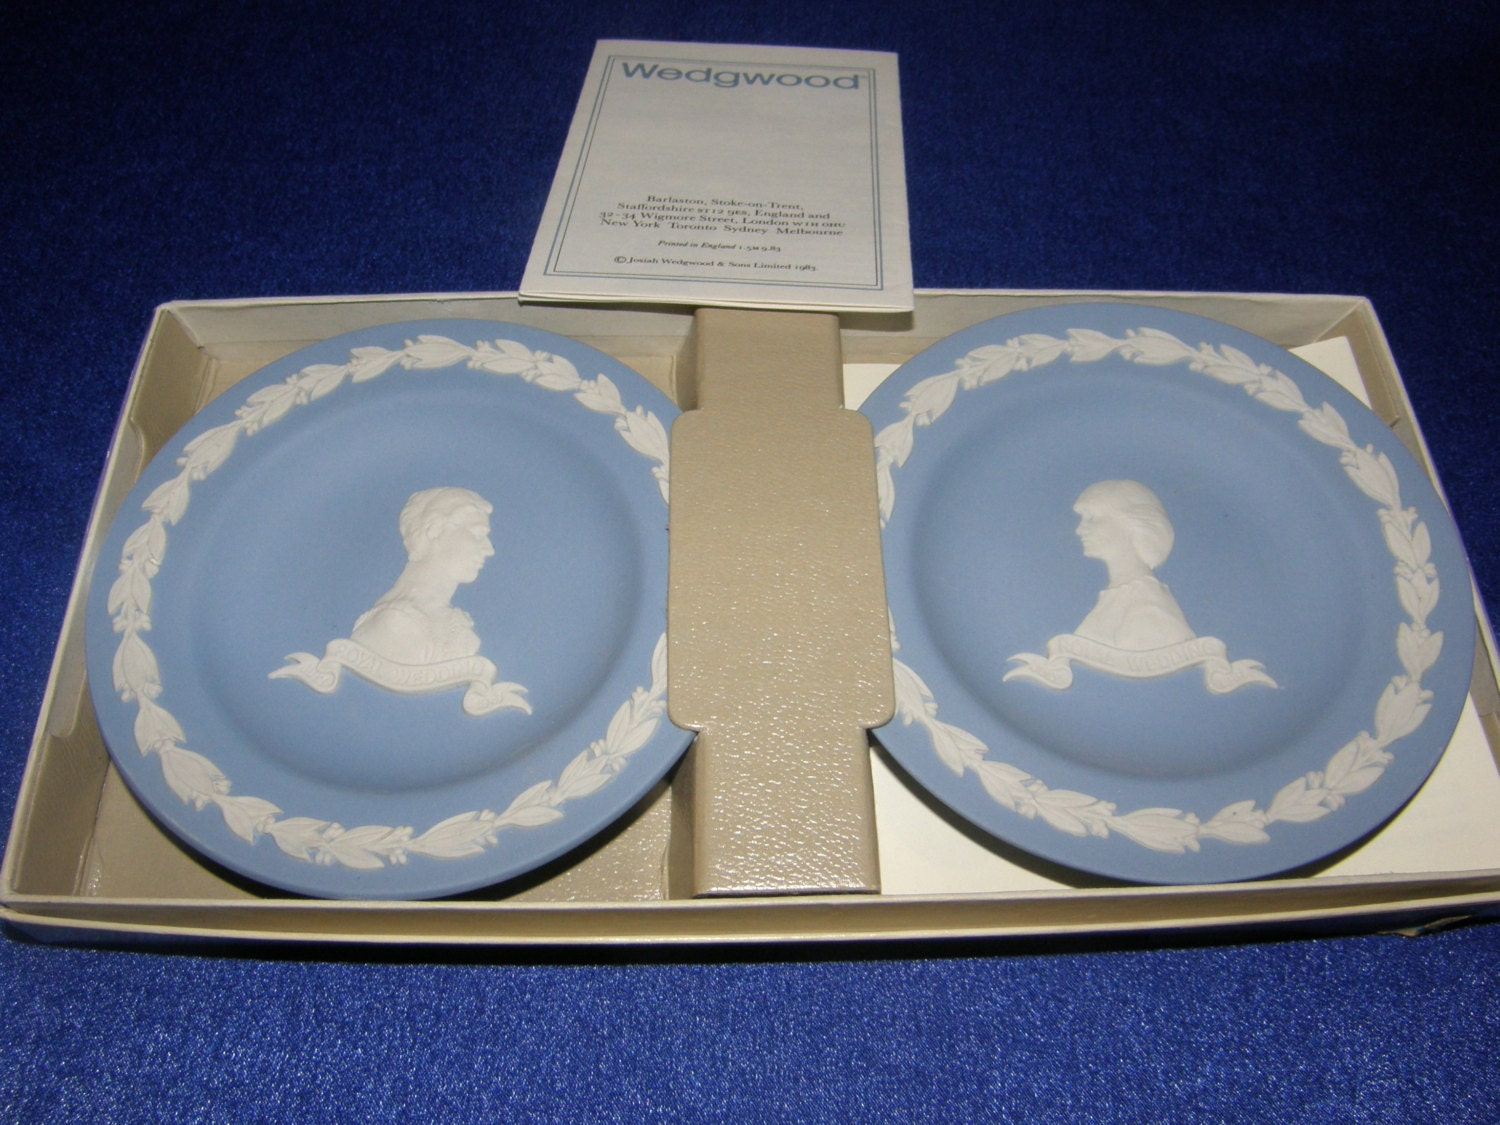 Prince charles princess diana wedding pin dishes by wedgwood for Diana dishes